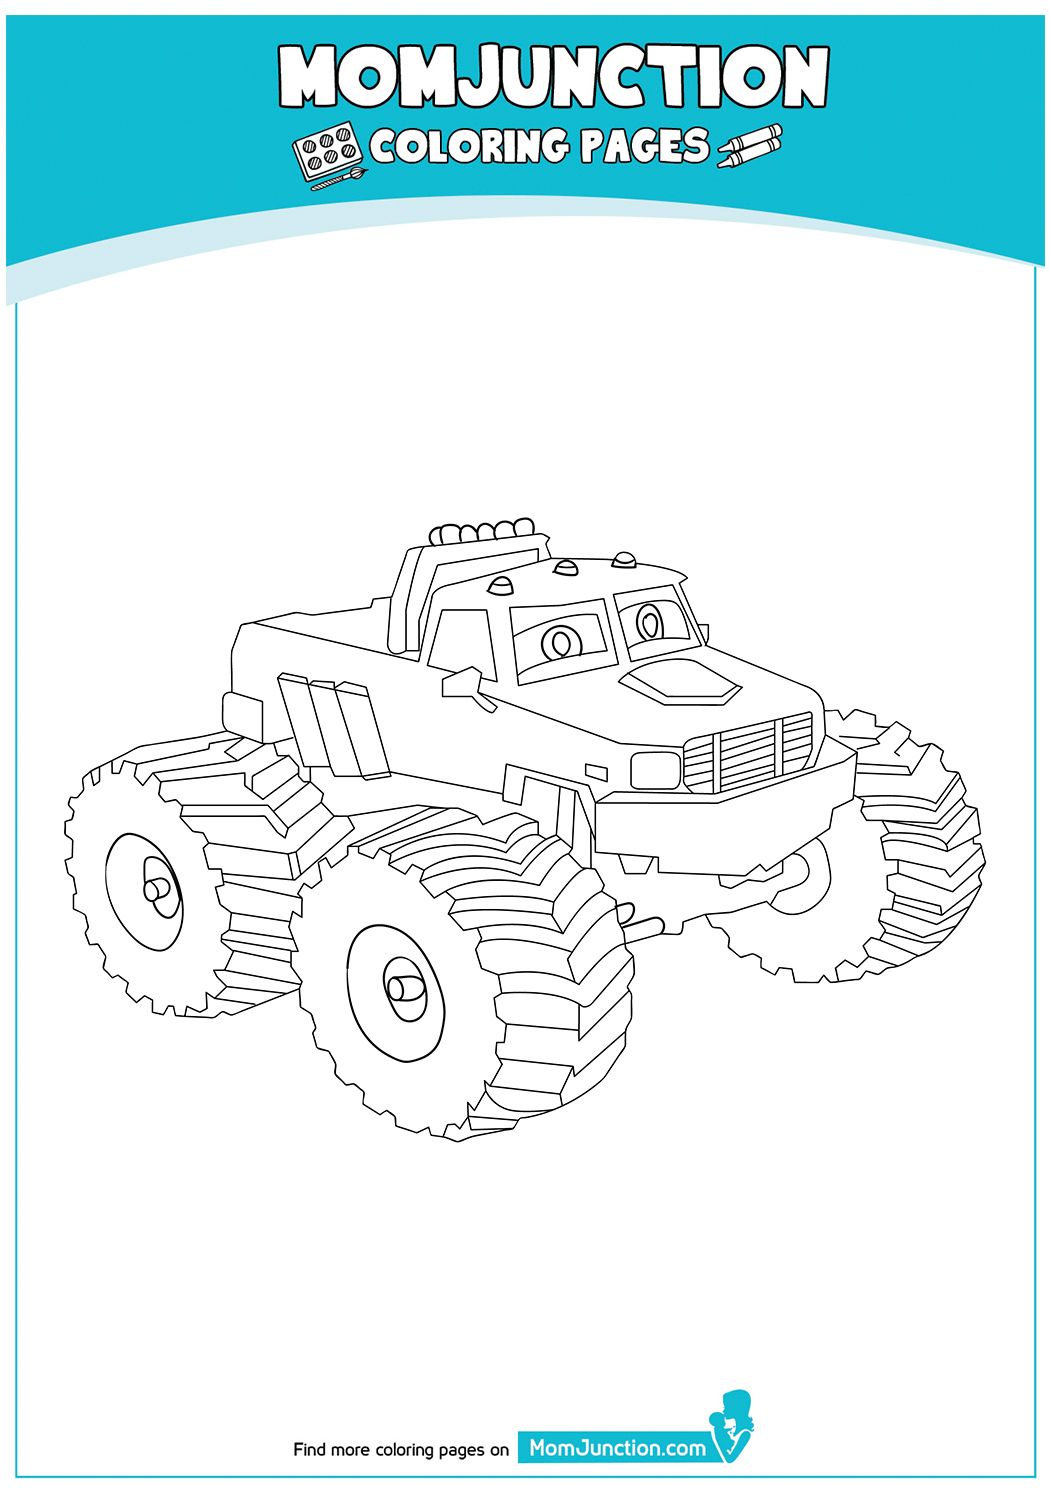 Print Coloring Image Momjunction Coloring Pages Mom Junction Color